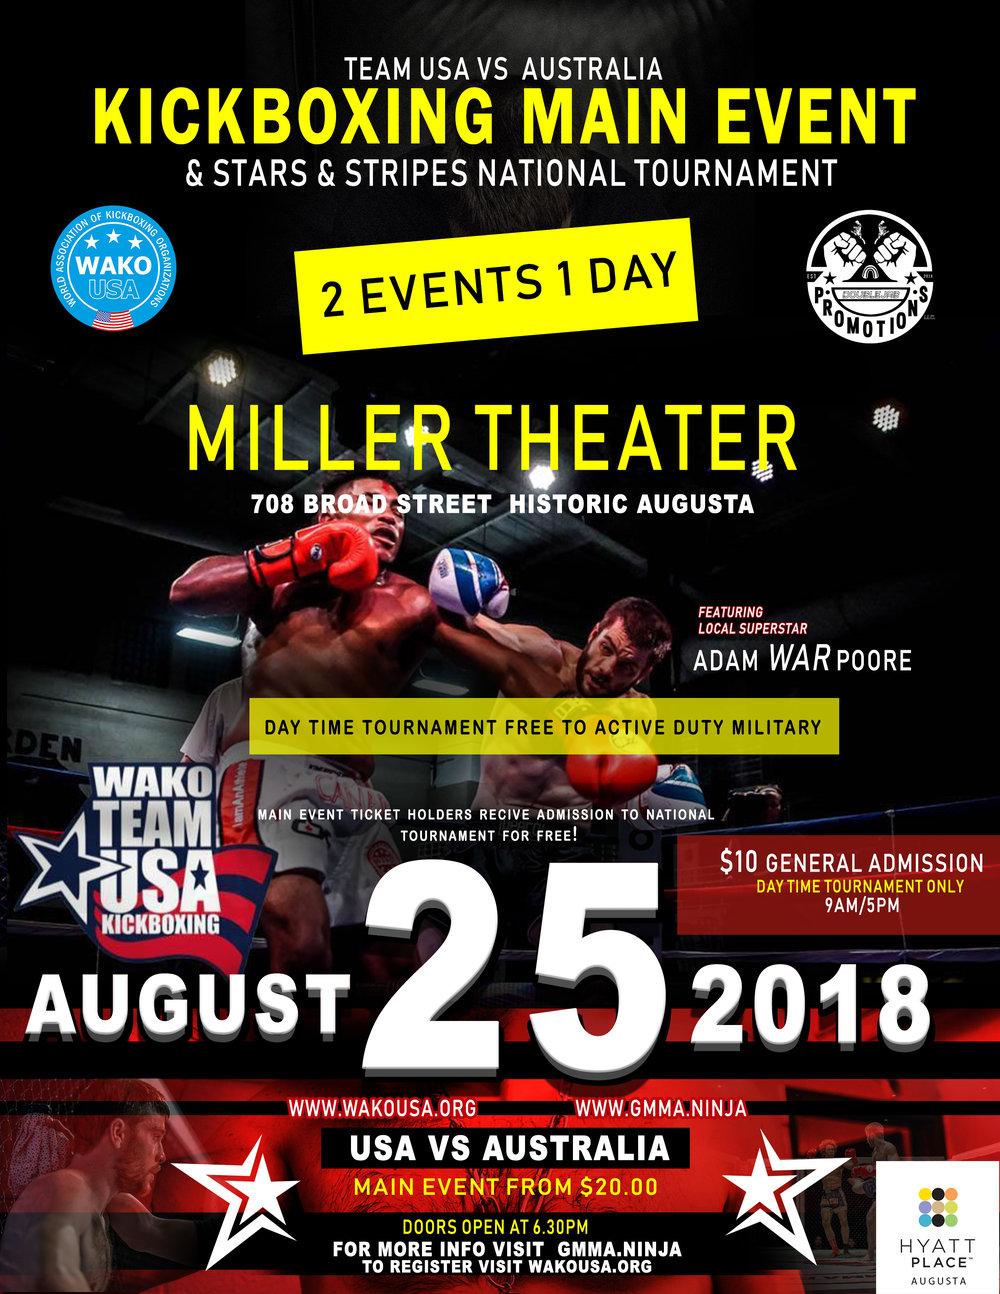 Stars and Stripes National Tournament!3 divisions! - The WAKO Stars and Stripes National tournament will be held on August 25th at the historic Miller Theater, in beautiful downtown Augusta, GA! Augusta's Broad street is the heart of the entertainment district and a short stroll to the Savannah River. It will feature 3 divisions for different experience levels. The winners will be considered to be on the WAKO USA team that will represent America in the Pan Ams. Tickets On Sale July 27!